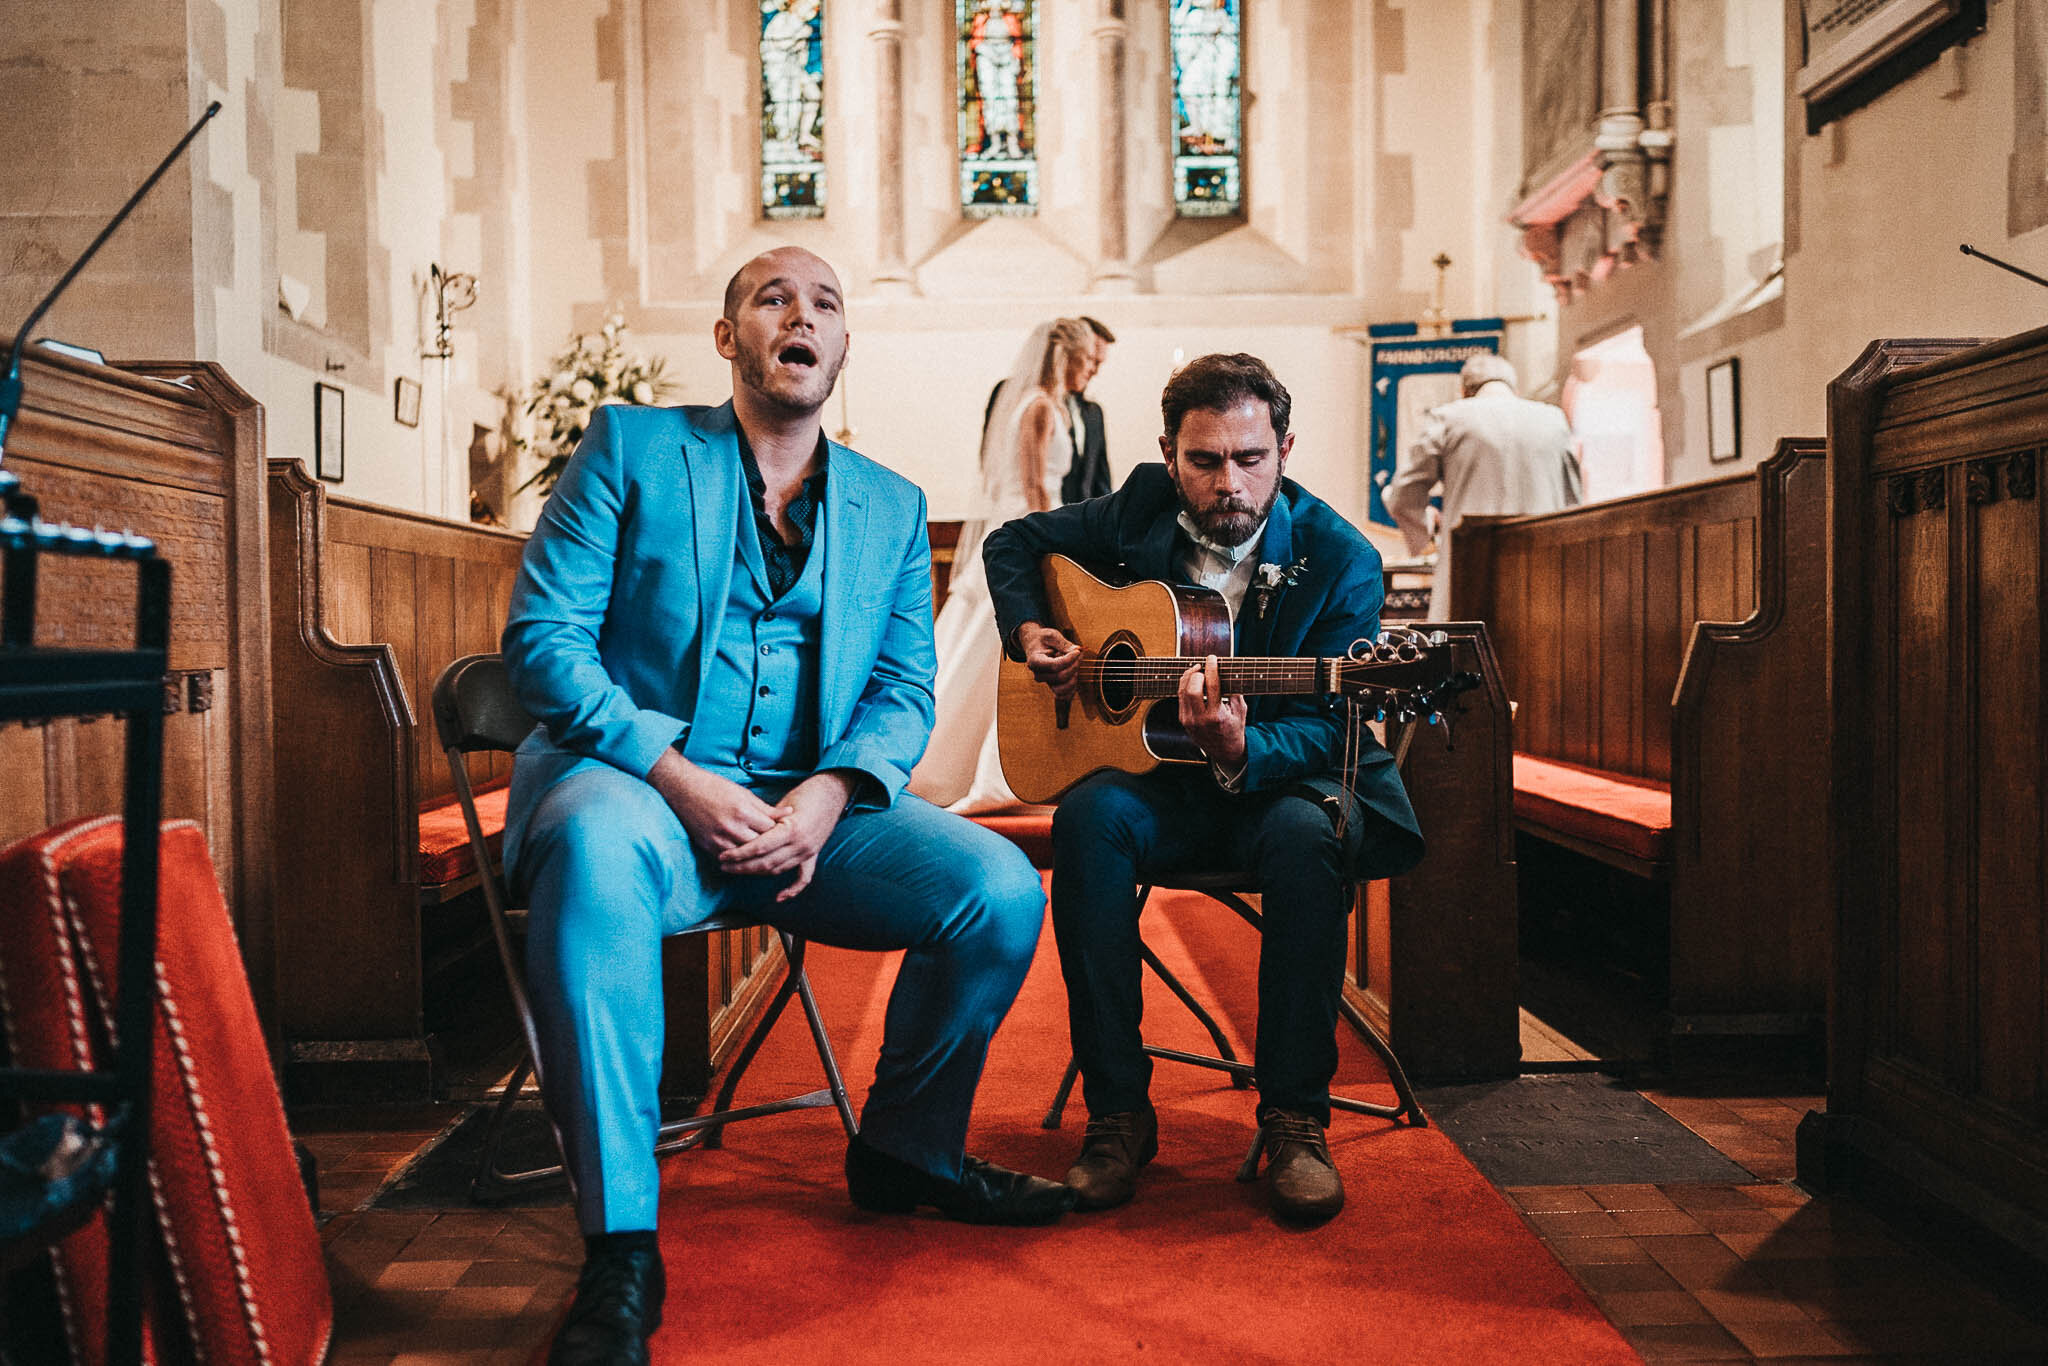 music-being-played-in-church